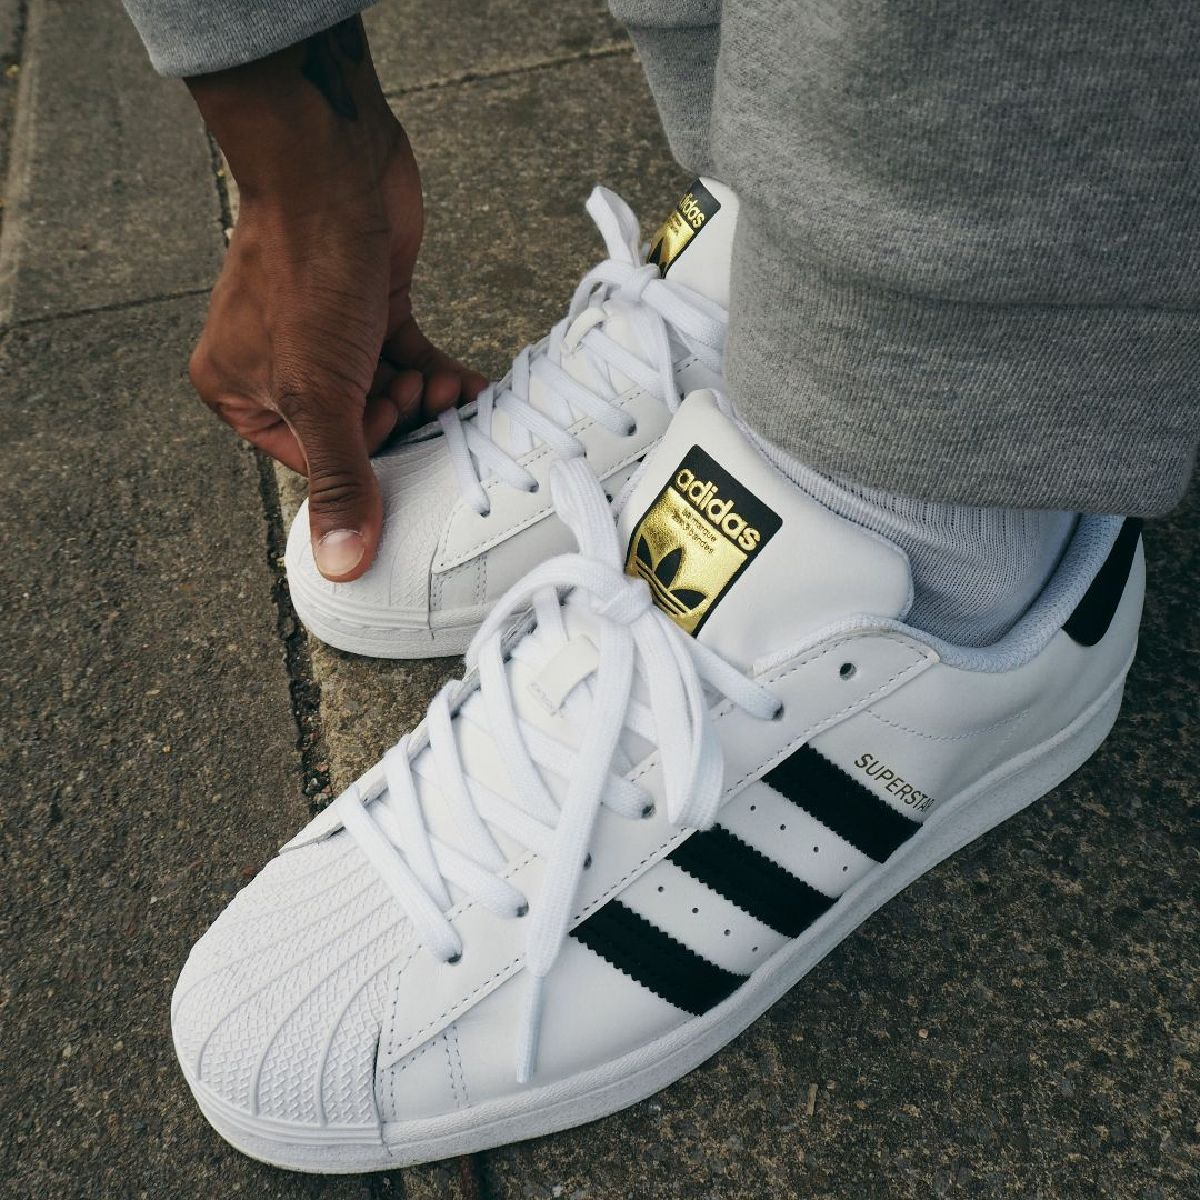 Watch the creps 👀  Treat yourself with a pair of @adidasOriginals Superstar today 📲 https://t.co/JFKMJHAhUE https://t.co/D9wS0g3s2K